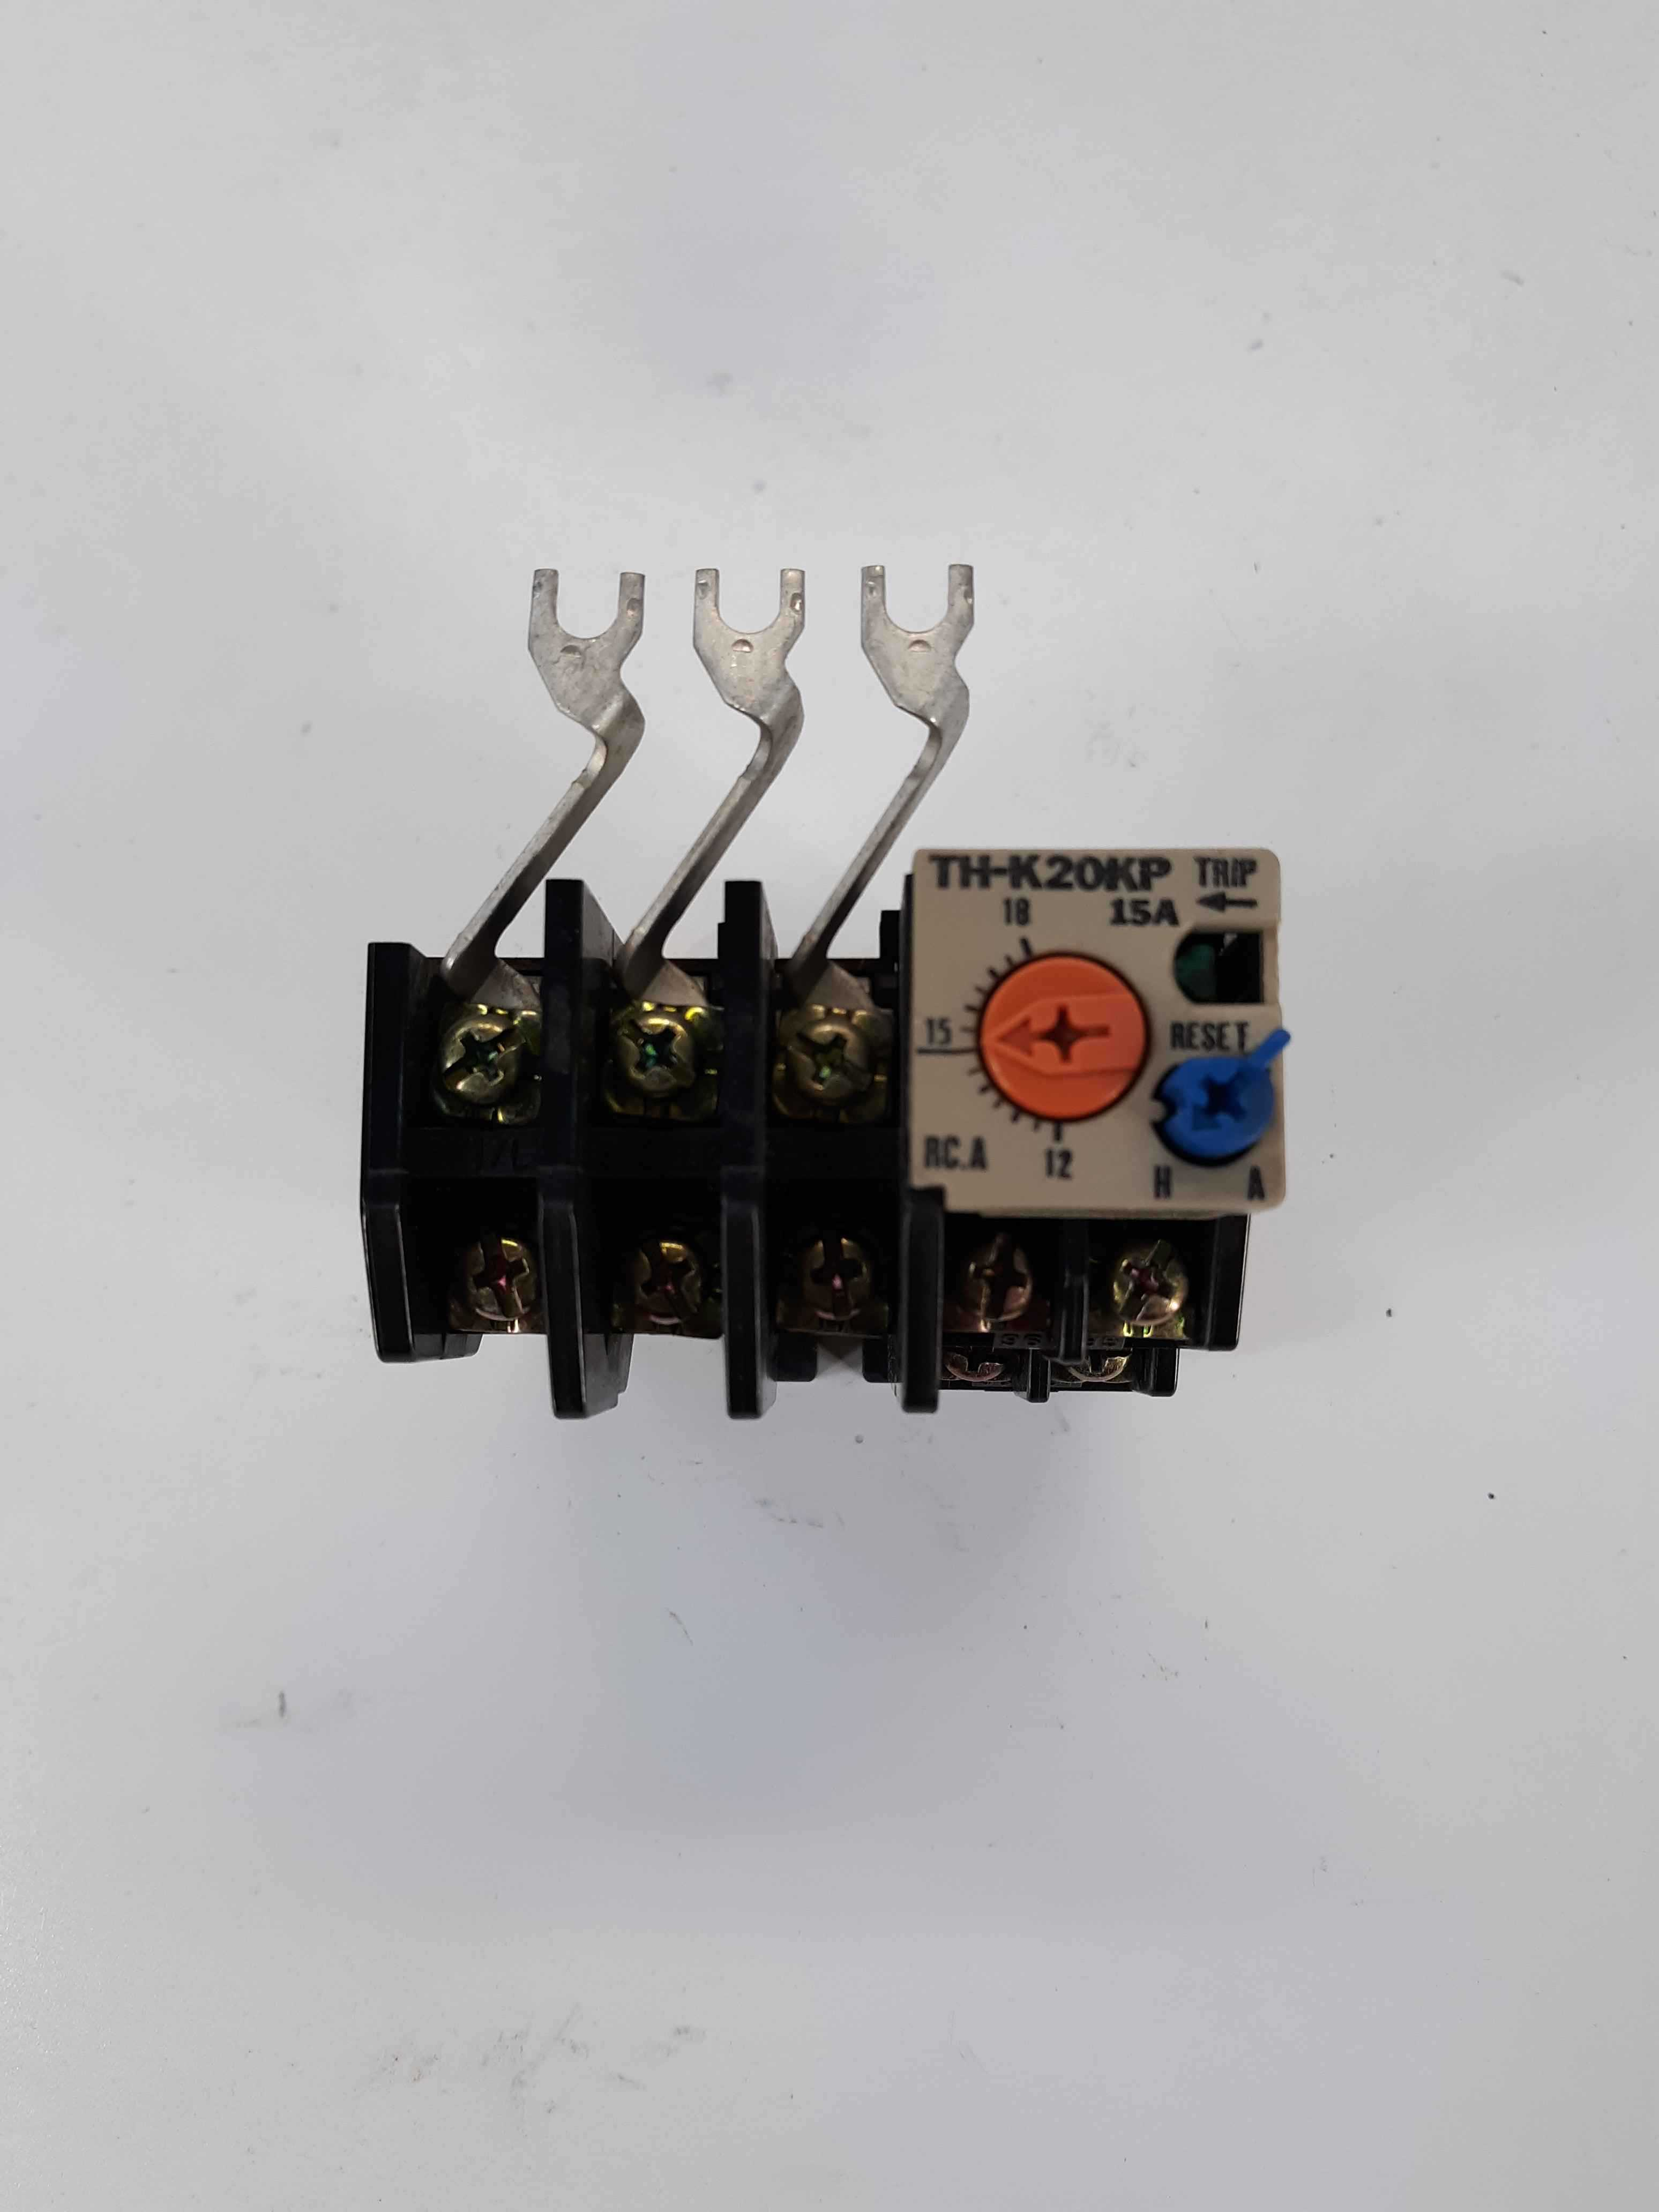 Mitsubishi TH-K20KP 15A  Overload Relay 12-18A